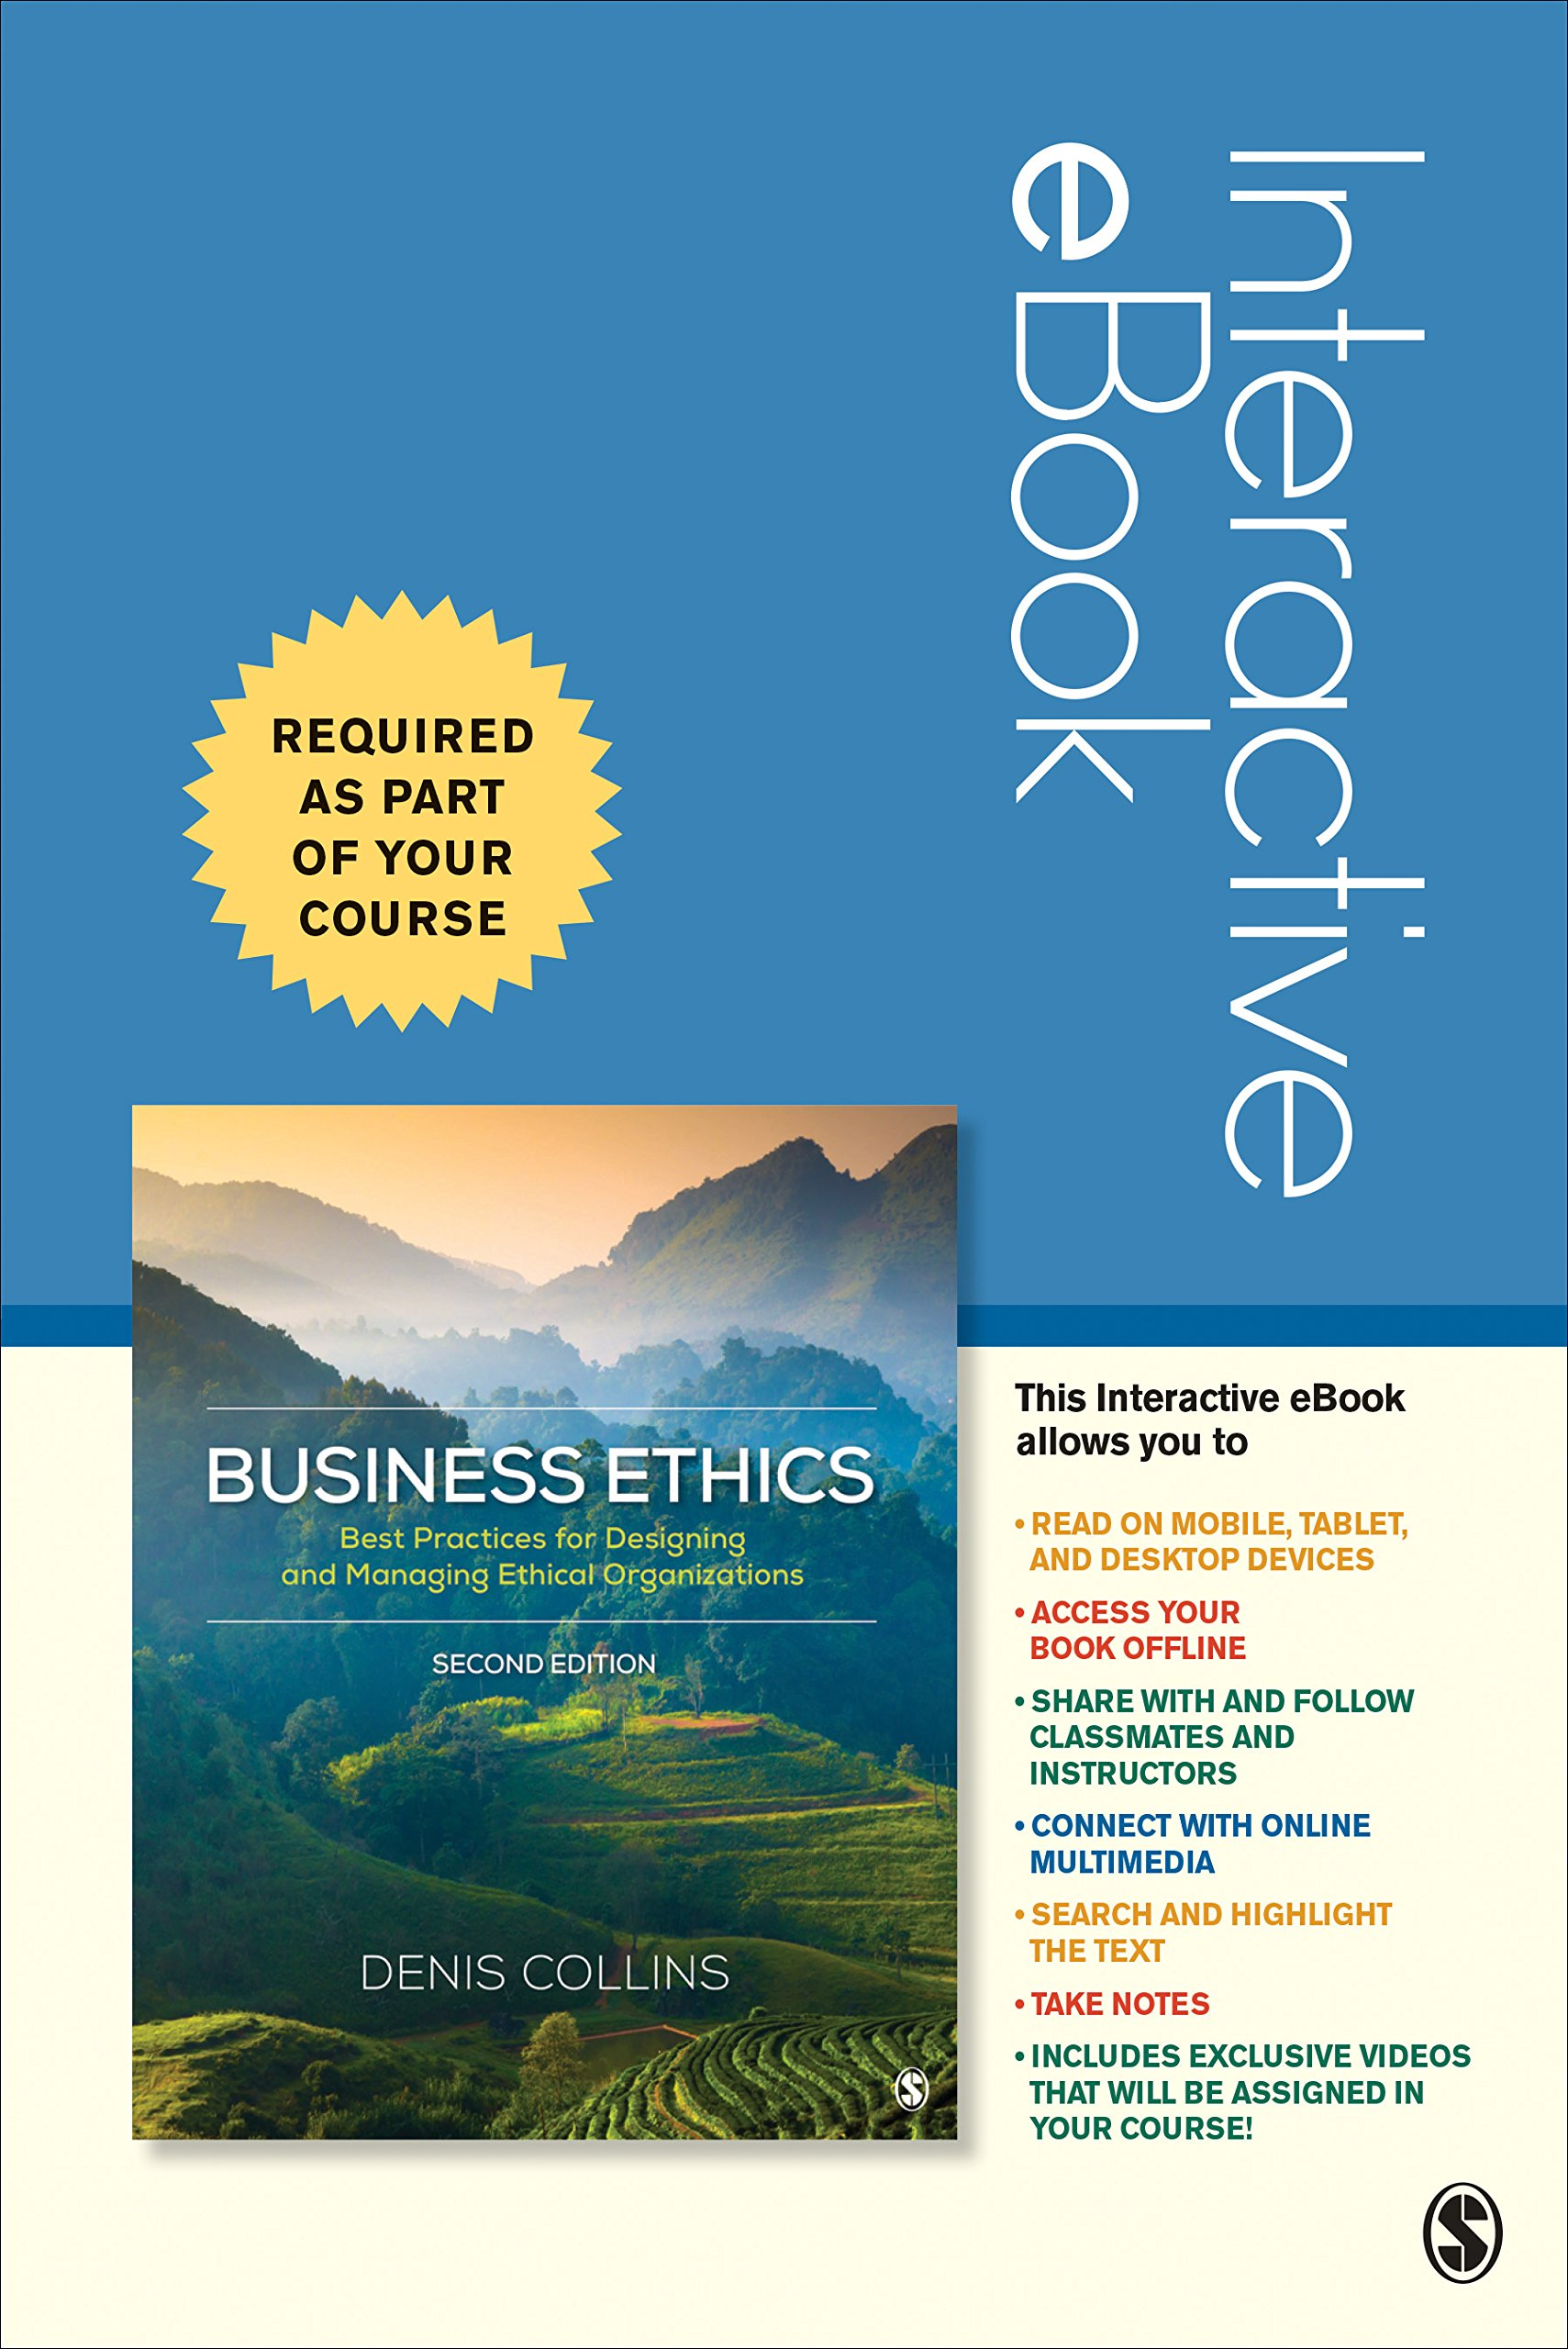 Business Ethics Interactive Ebook Best Practices For Designing And Managing Ethical Organization Denis Collins 9781544324616 Books